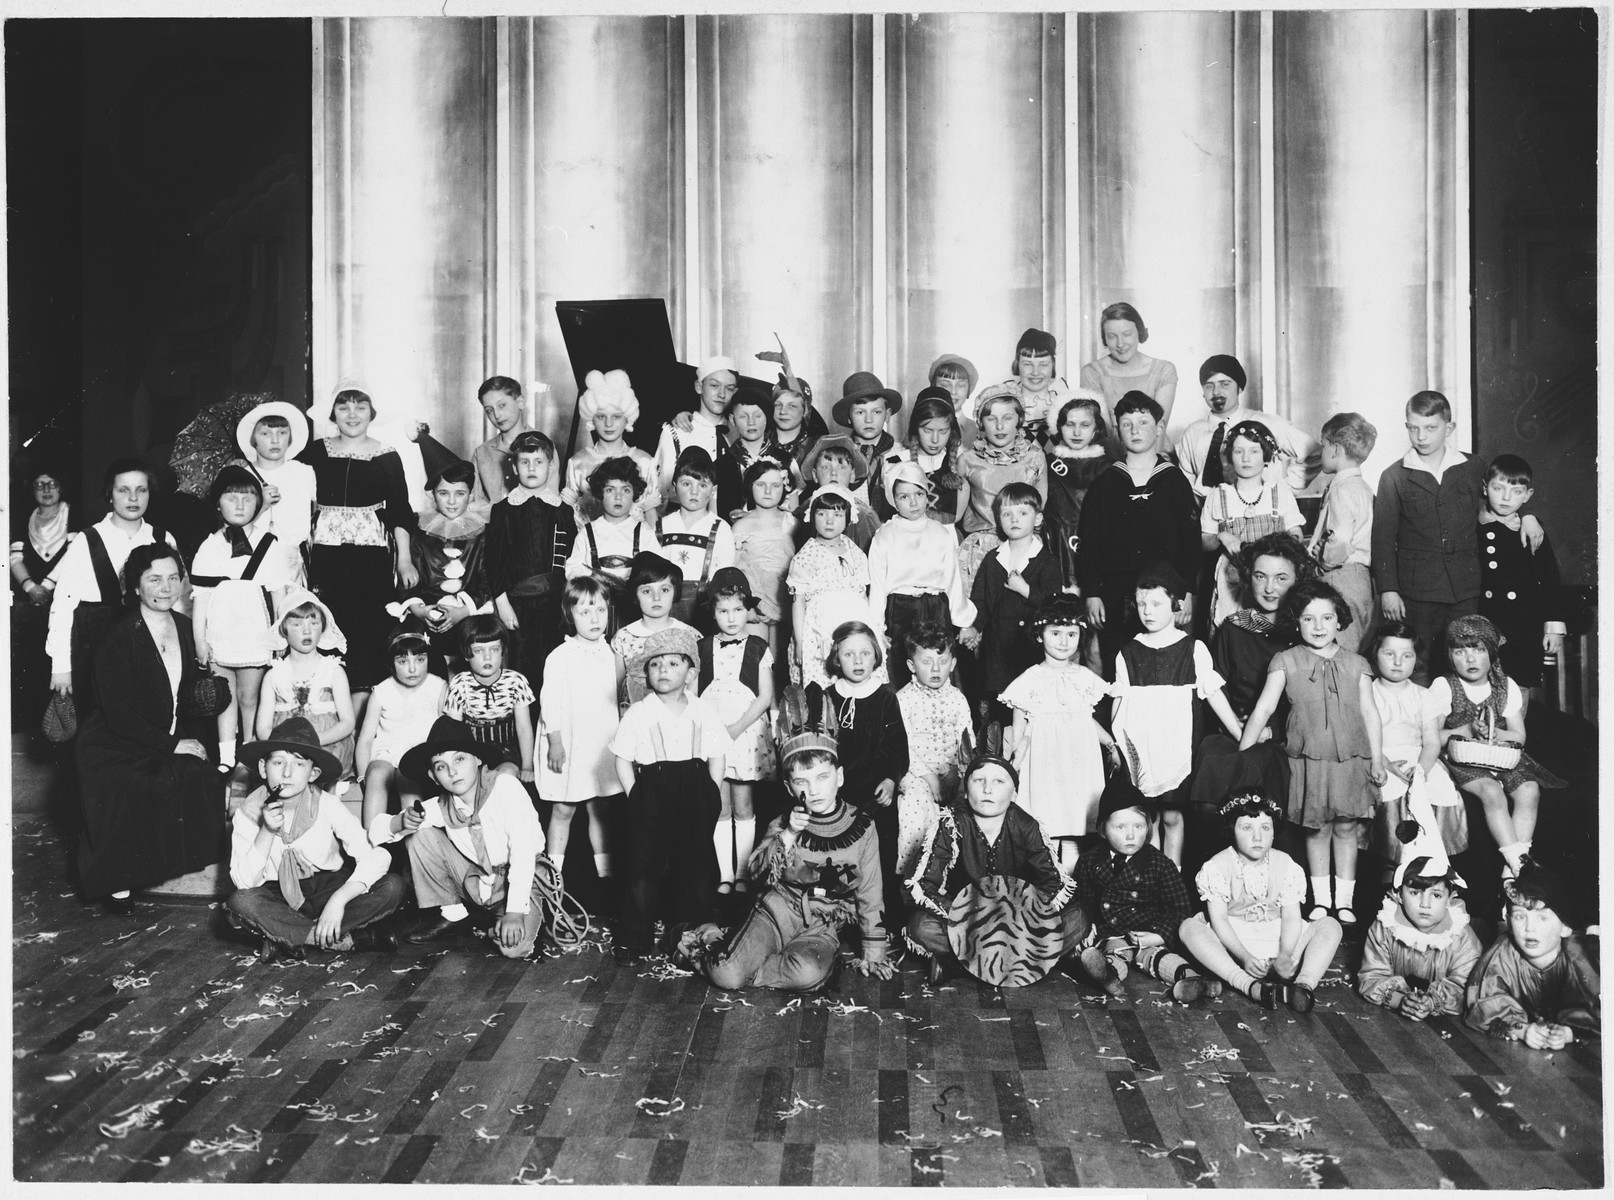 Class portrait of Jewish school children dressed in Purim costumes.  Among those pictured is Fritz Glueckstein.